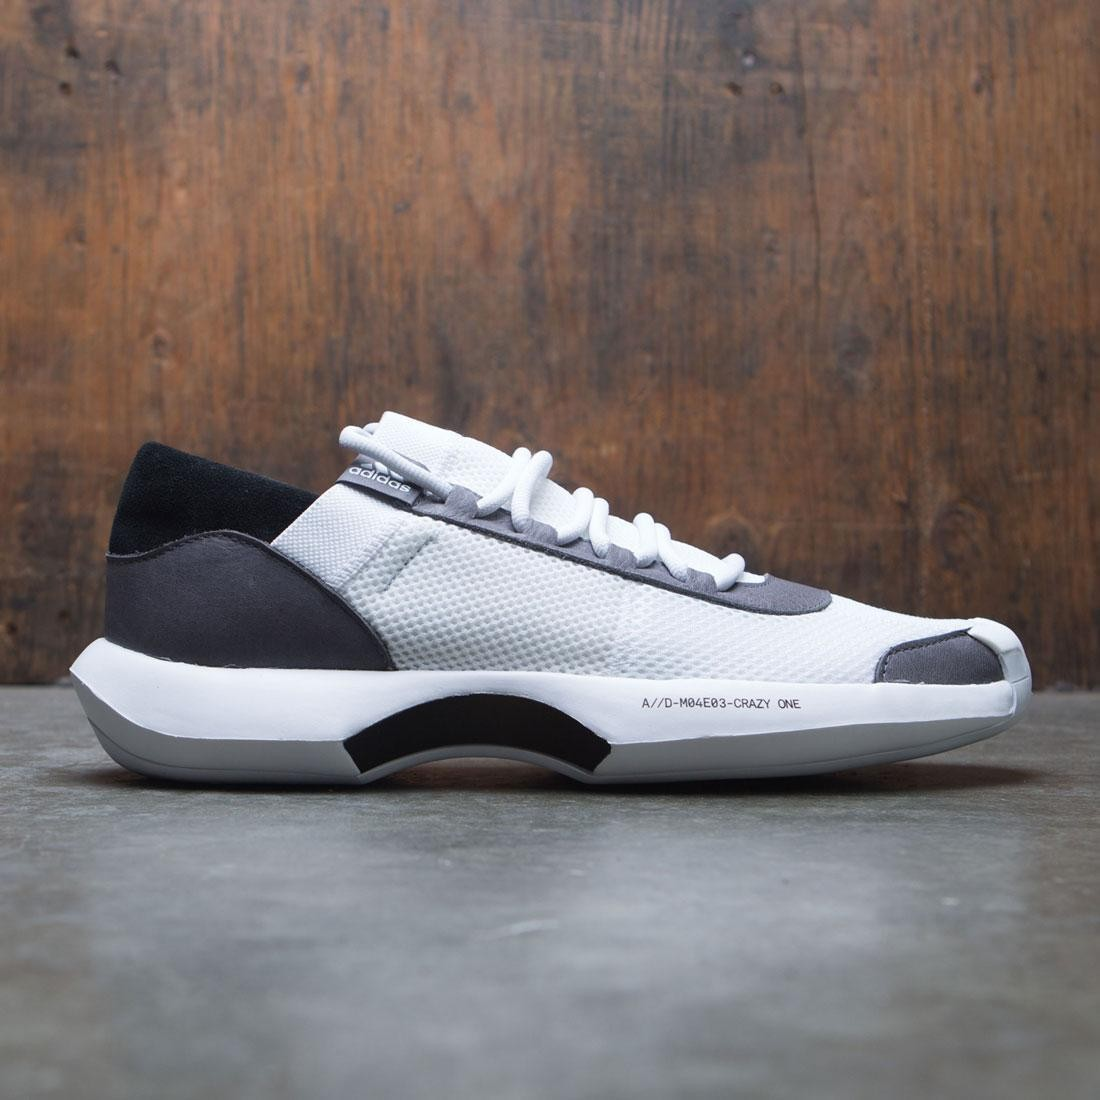 detailed look 55e25 913af Adidas Consortium Men Crazy 1 AD Workshop white core black c